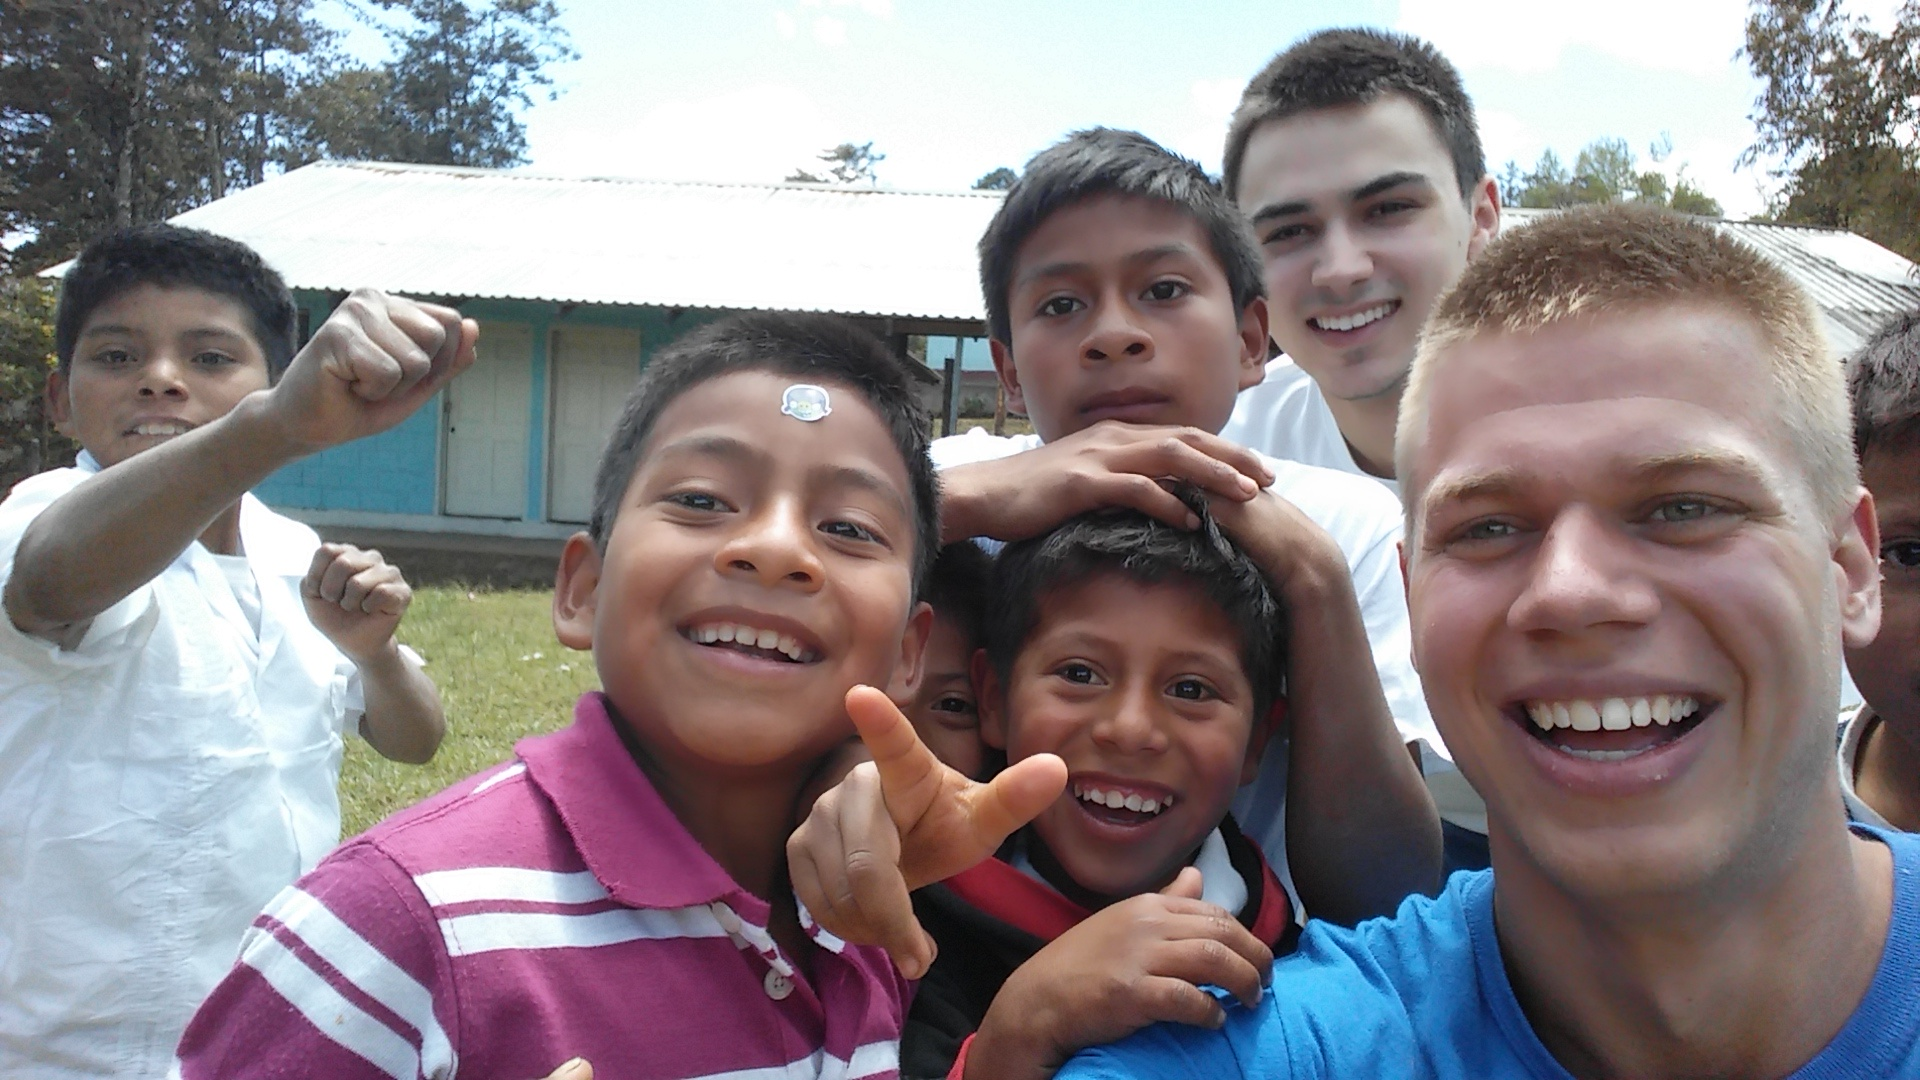 Paul and Joe with the children of El Cacao